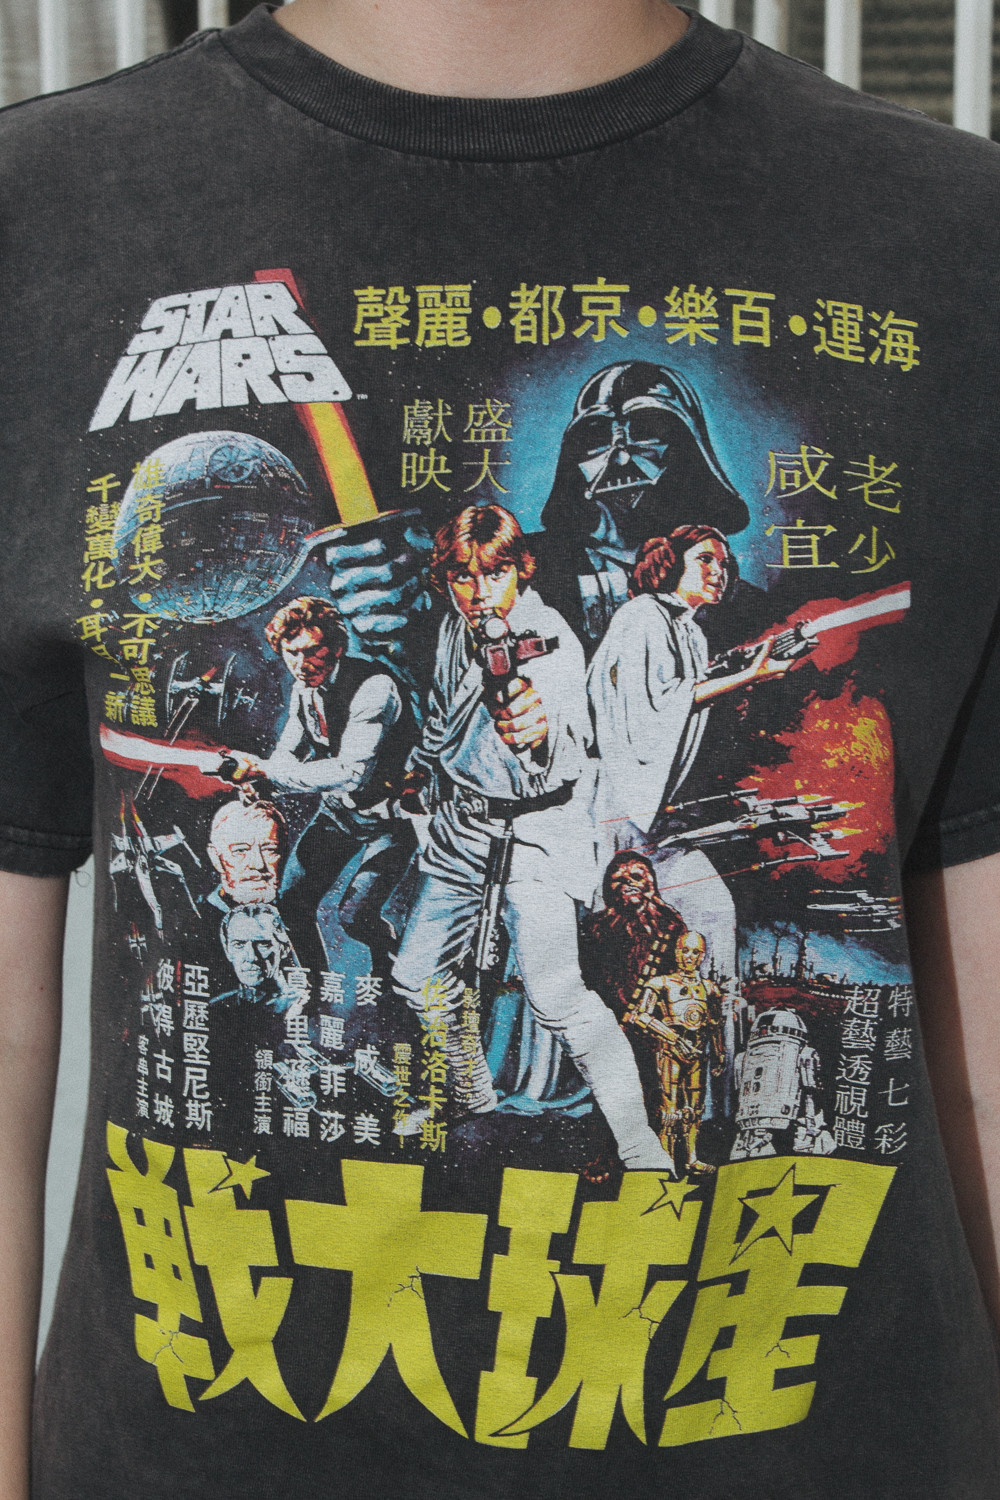 NEW STAR WARS Han Solo Movie Retro T-Shirt New Authentic Vintage Shirt 80s Style